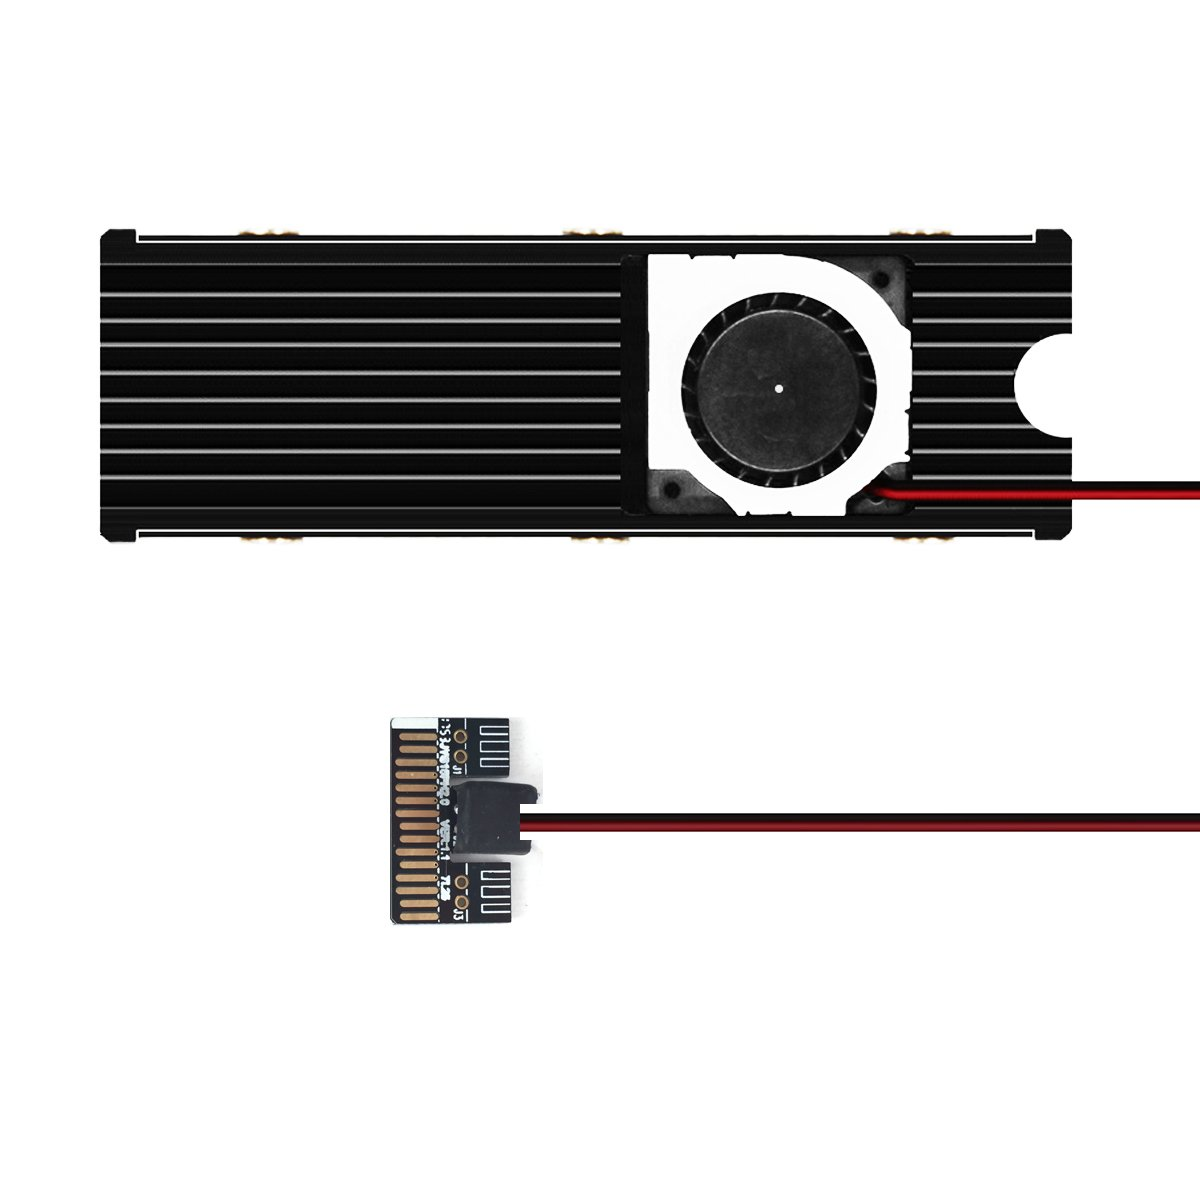 GLOTRENDS NVMe M.2 SSD Positive Cooler Heatsinks 20mm Fan (PA09-Heatsink)